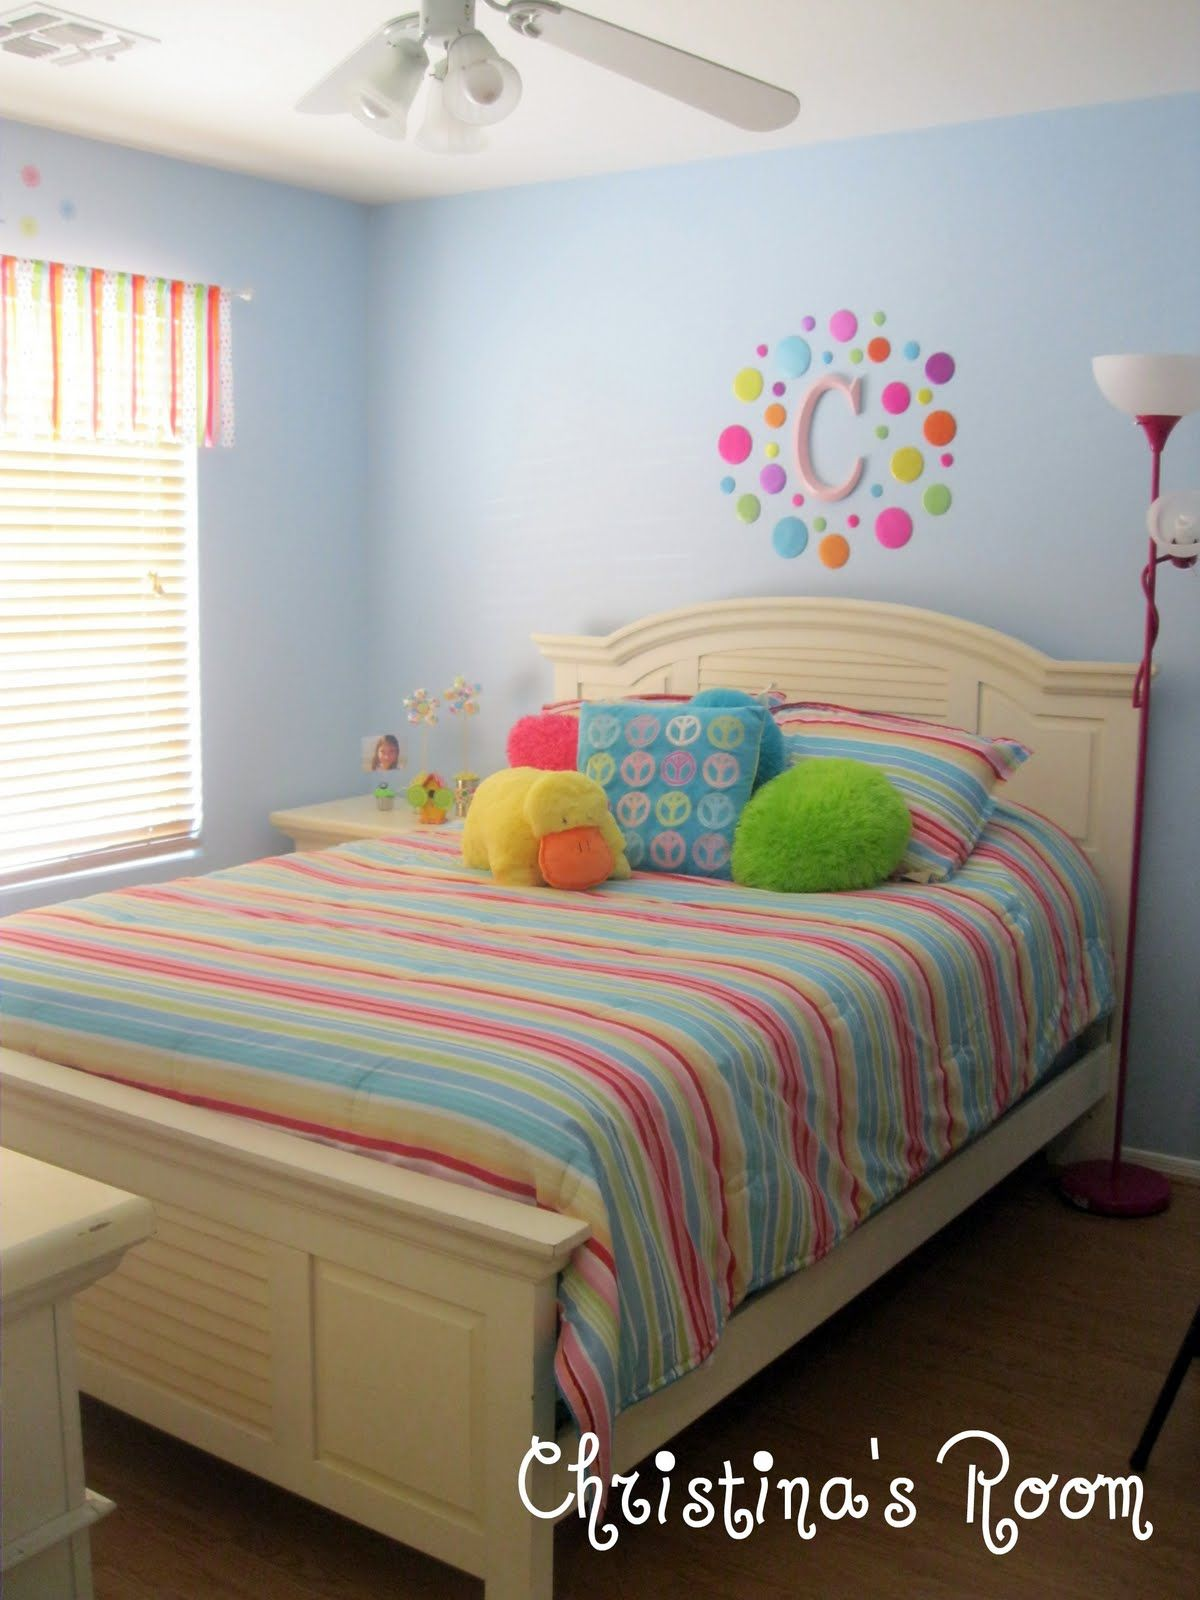 Before And After Christina S Room Girls Rainbow Bedroom Big